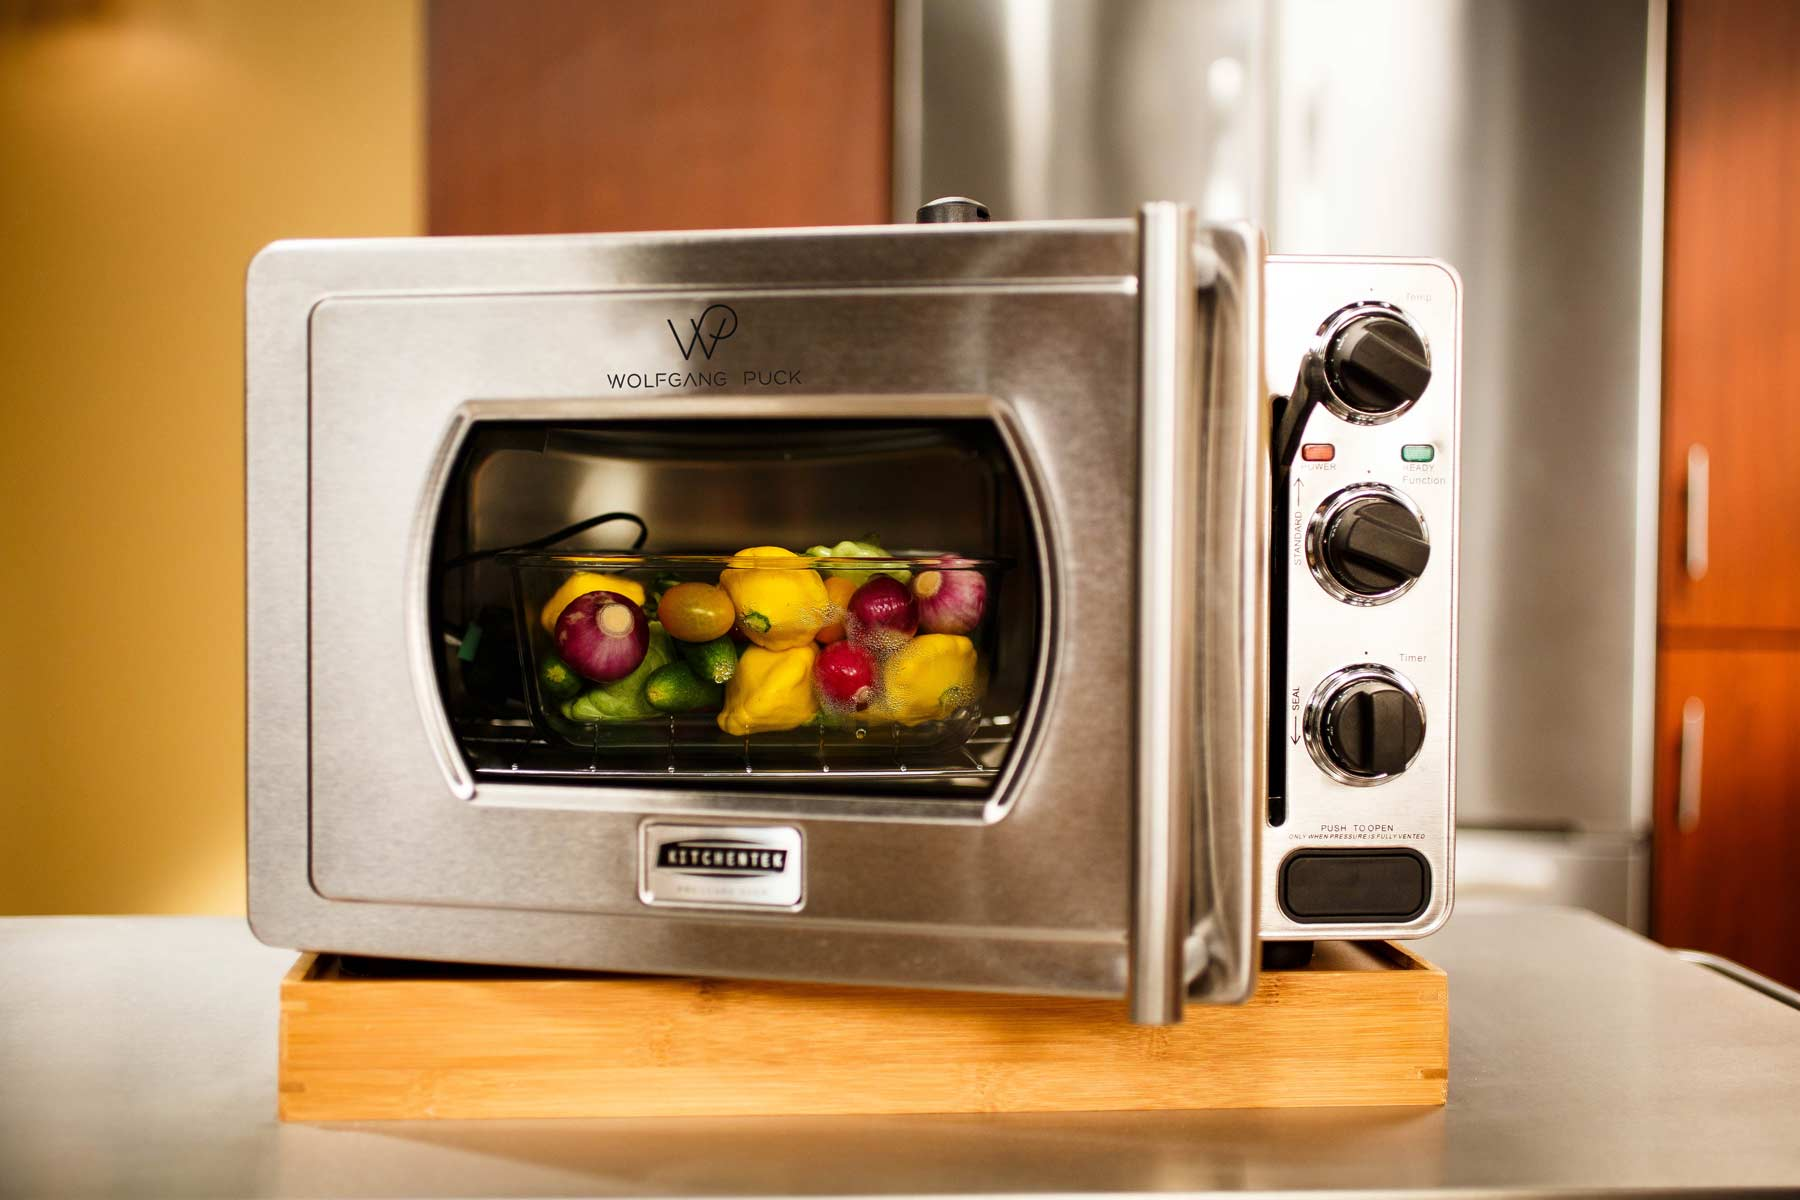 Uncategorized Wolfgang Puck Kitchen Appliances puck oven wolfgang products